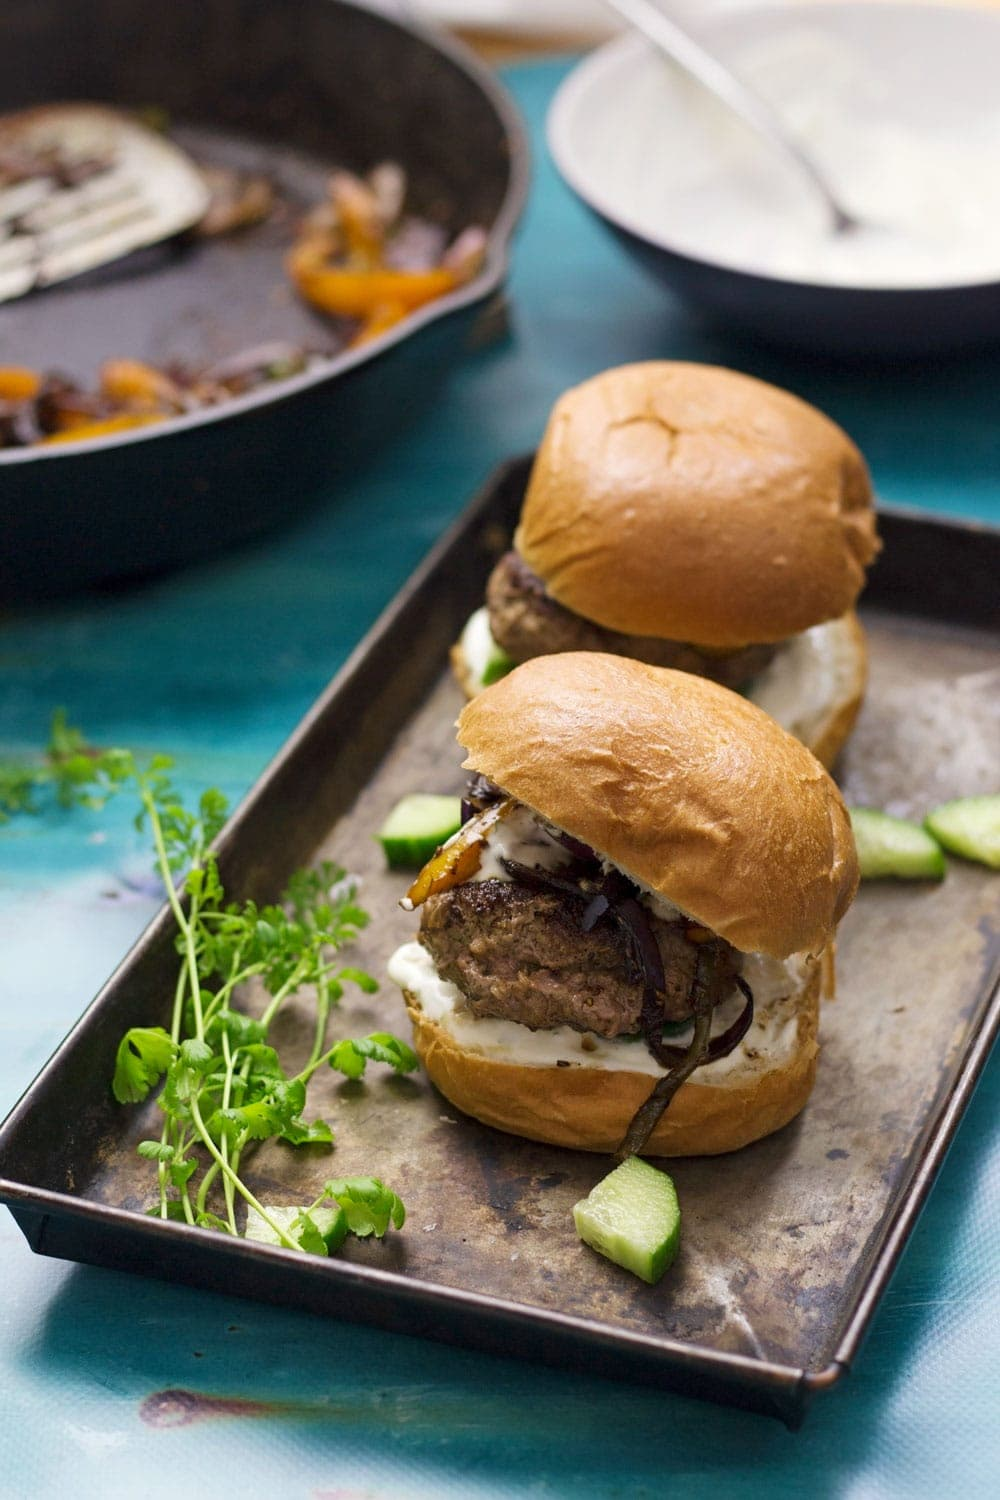 These Greek lamb burgers are served in a brioche bun. Topped with caramelised pepper and onion, refreshing cucumber and a drizzle of garlicky Greek yoghurt!